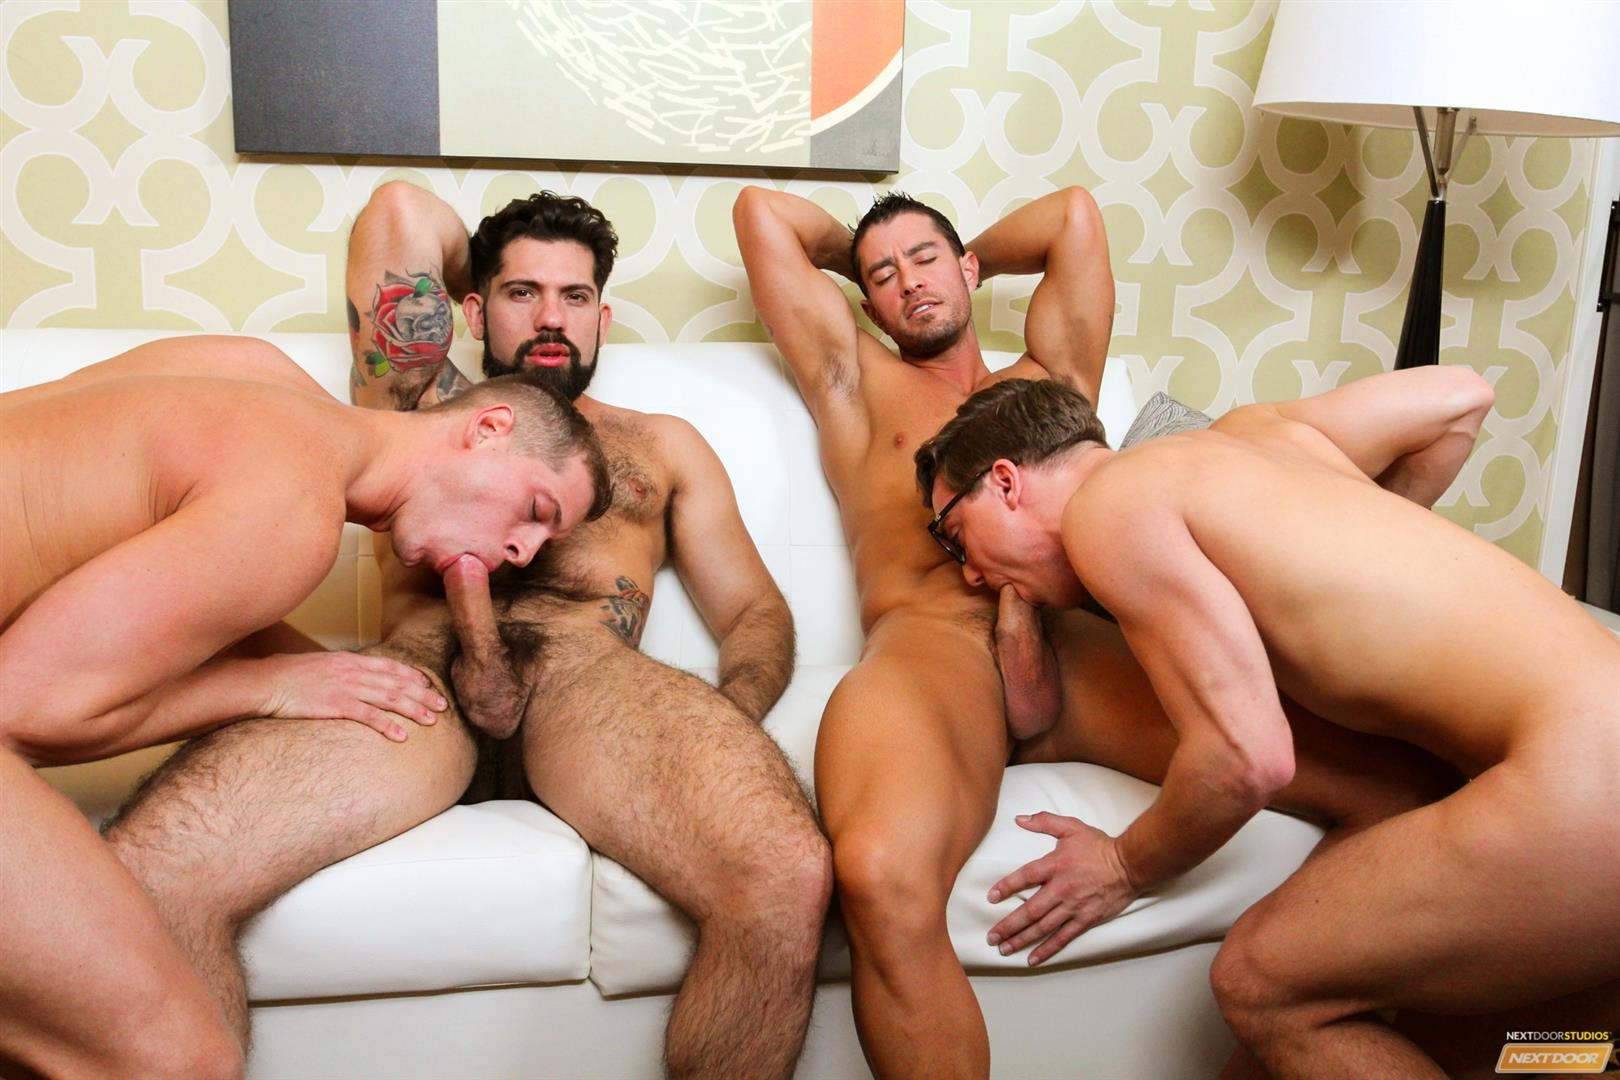 Cody Cummings and Tyler Morgan and Alessandro Del Torro Cock Sucking Lessons Amateur Gay Porn 15 Cody Cummings Gives The Boys Cock Sucking Lessons